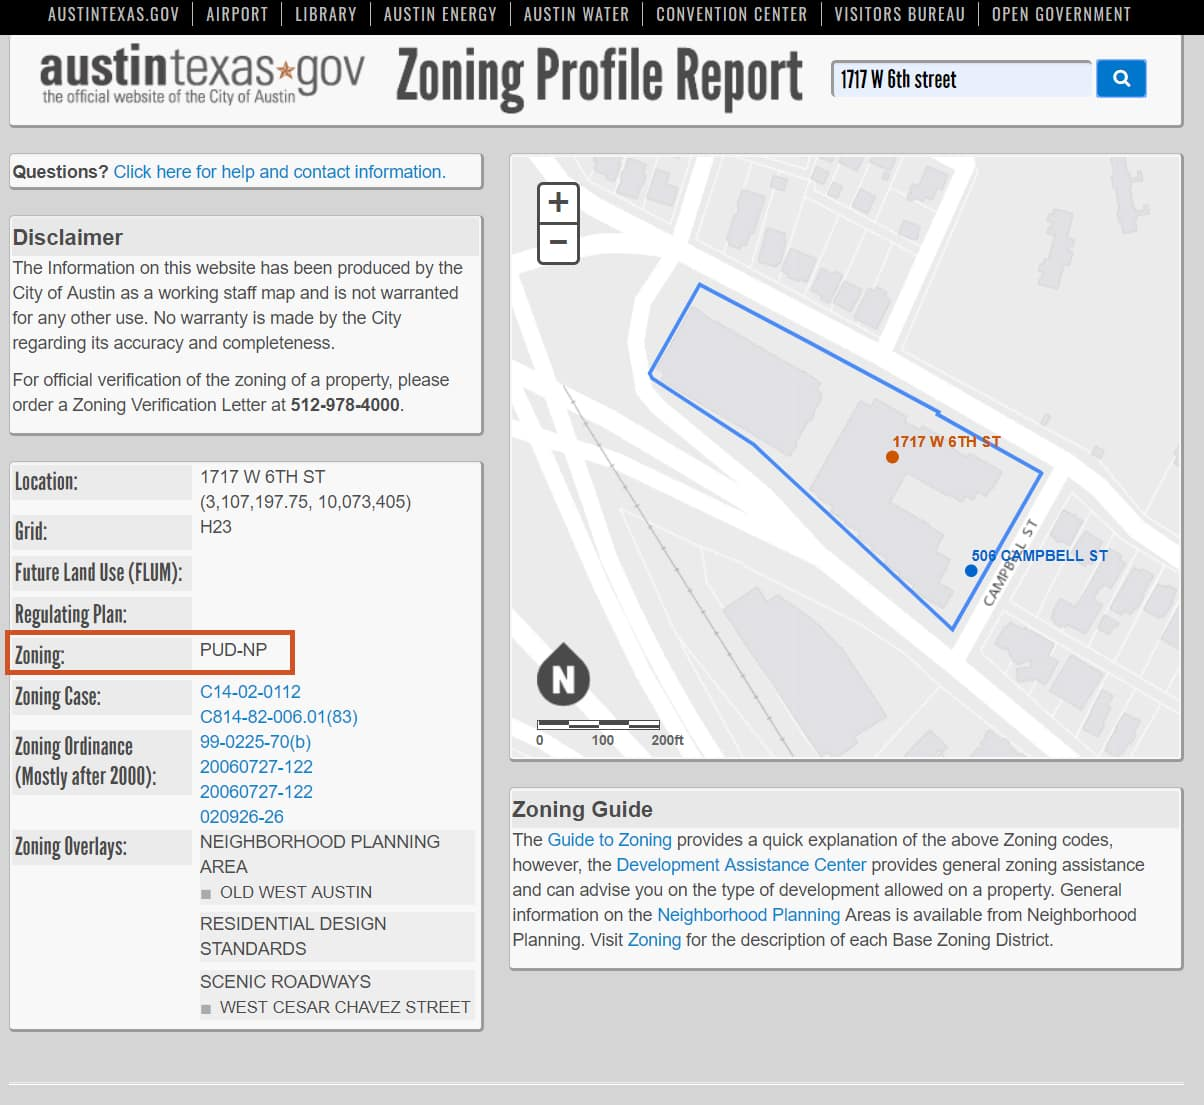 City of Austin Zoning Profile